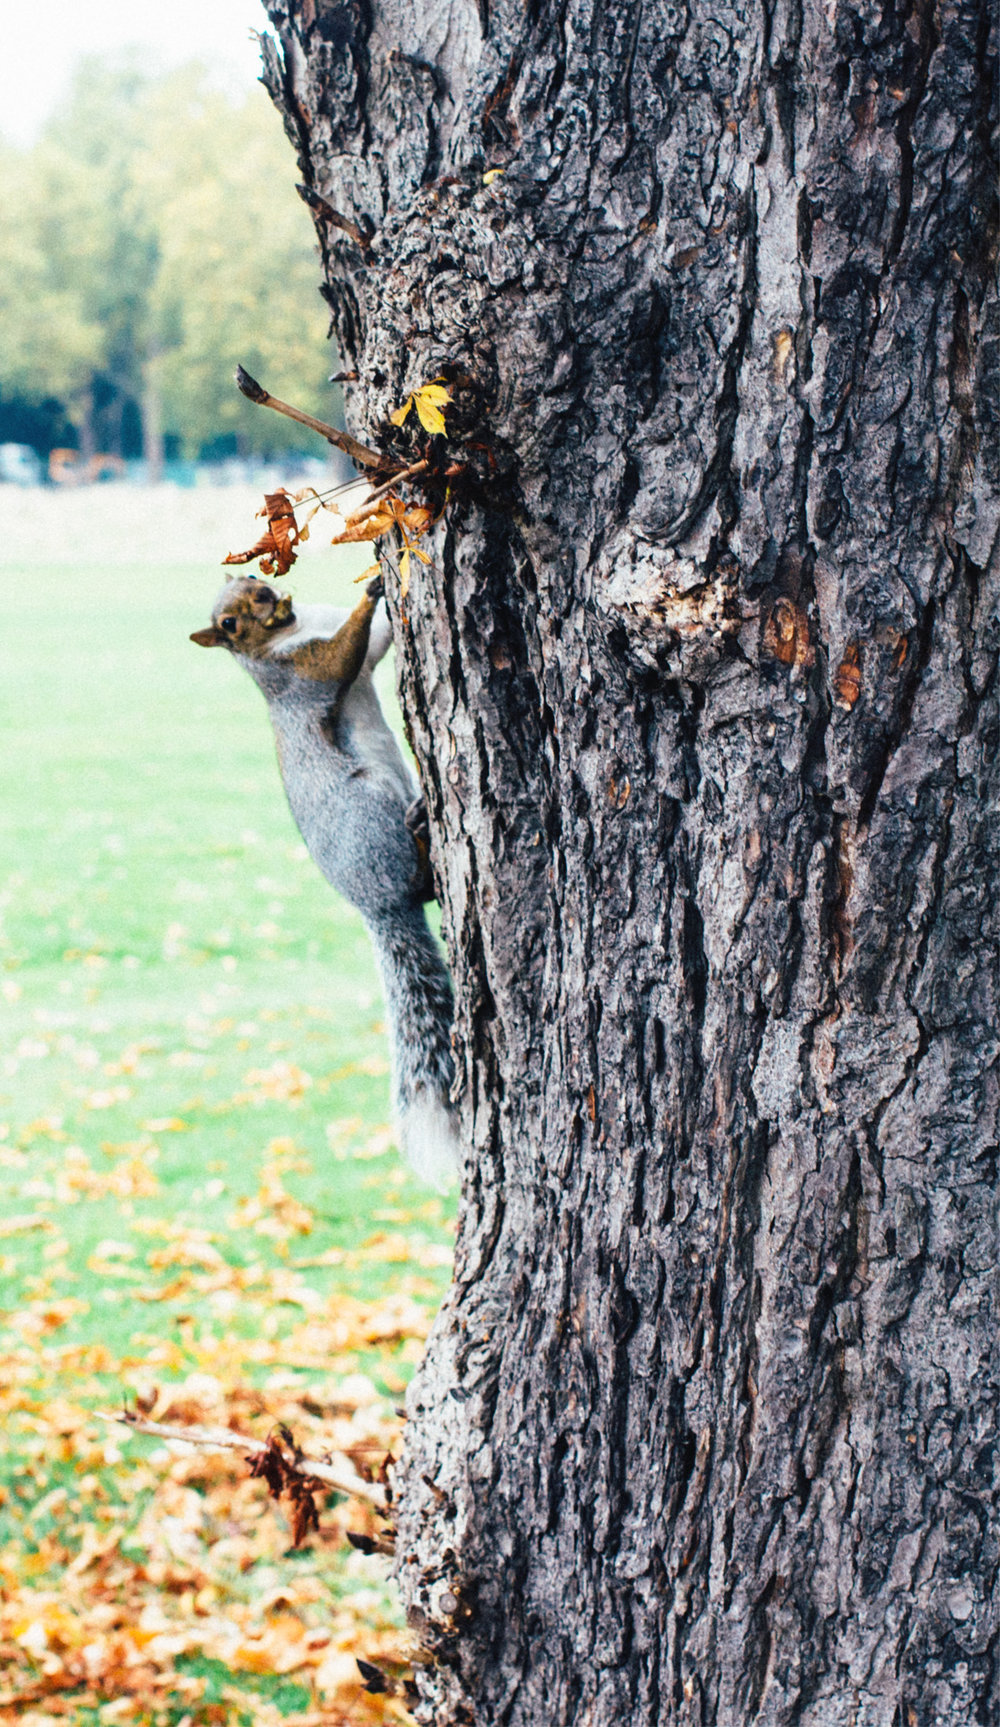 squirrel in a tree.jpg